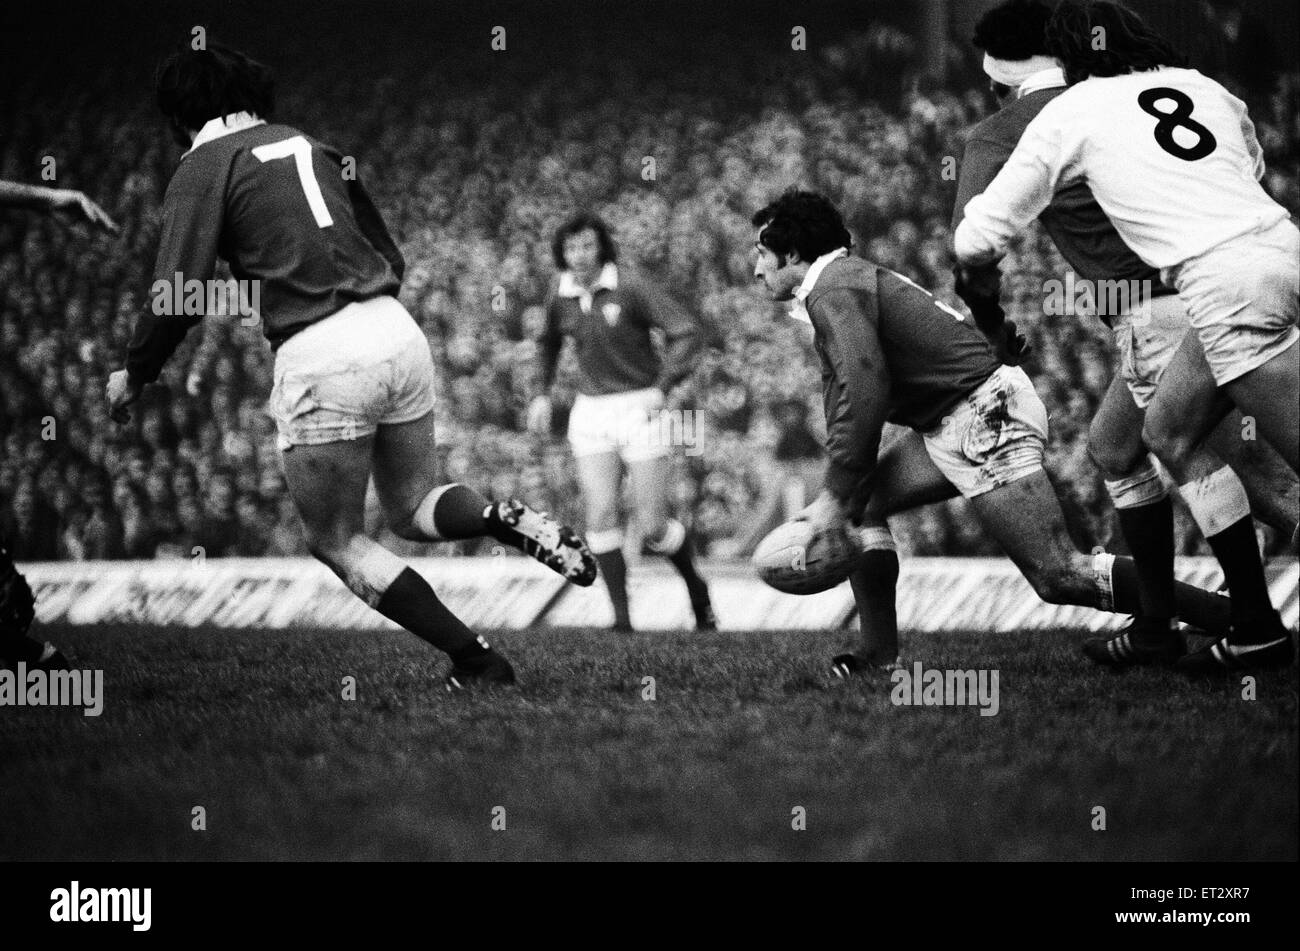 England 9-21 Wales, Rugby Union, Five Nations Championship match at Twickenham, 17th January 1976. - Stock Image